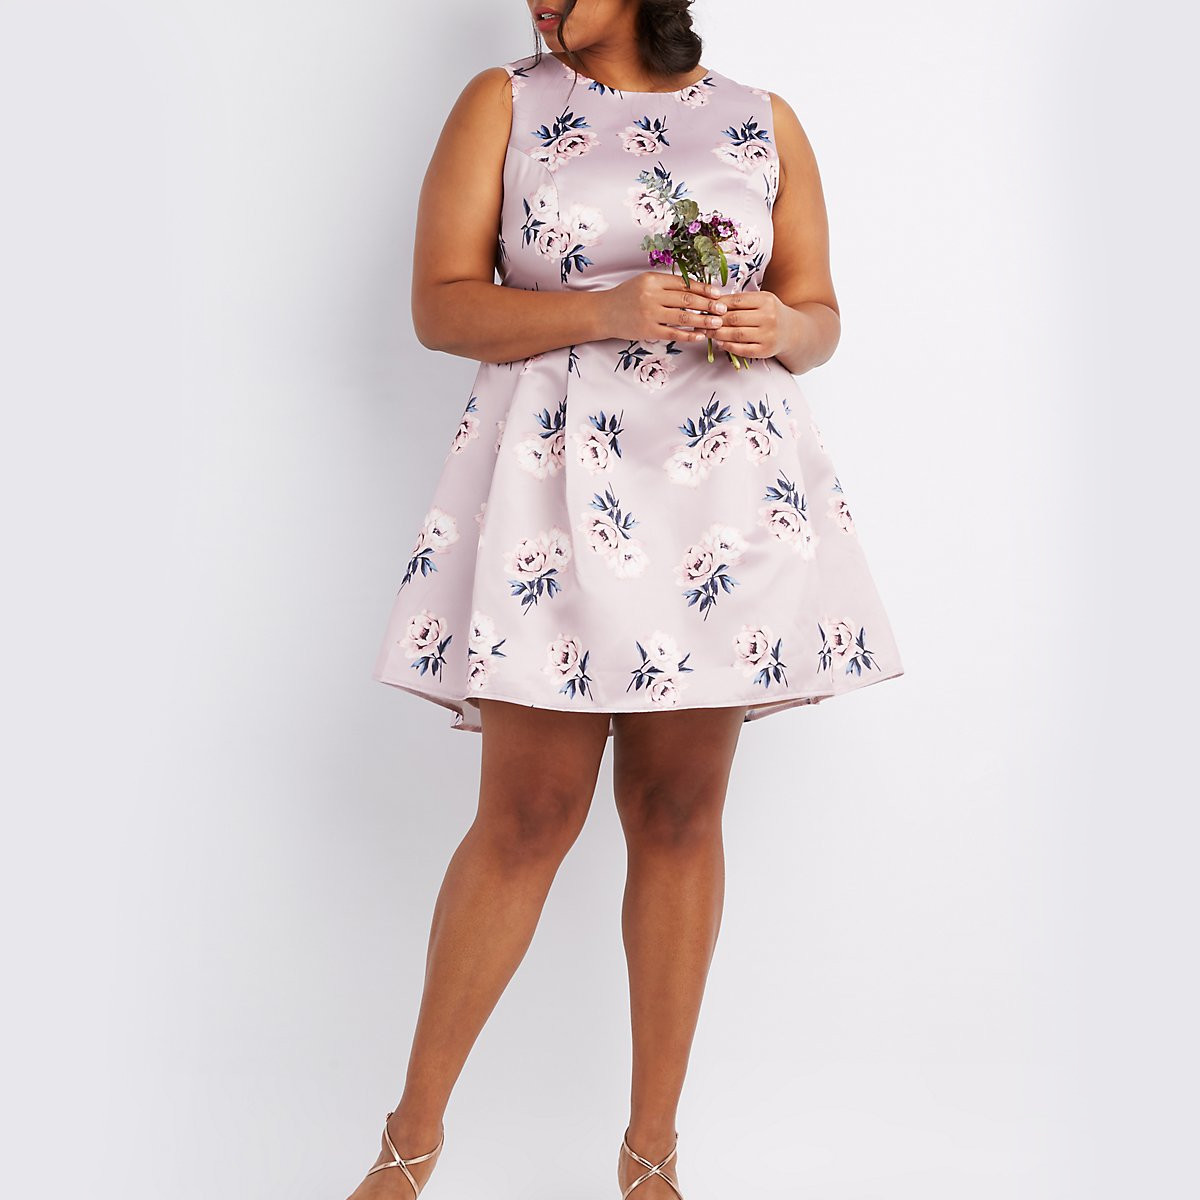 Perfectly Pleated in Plus Size photo